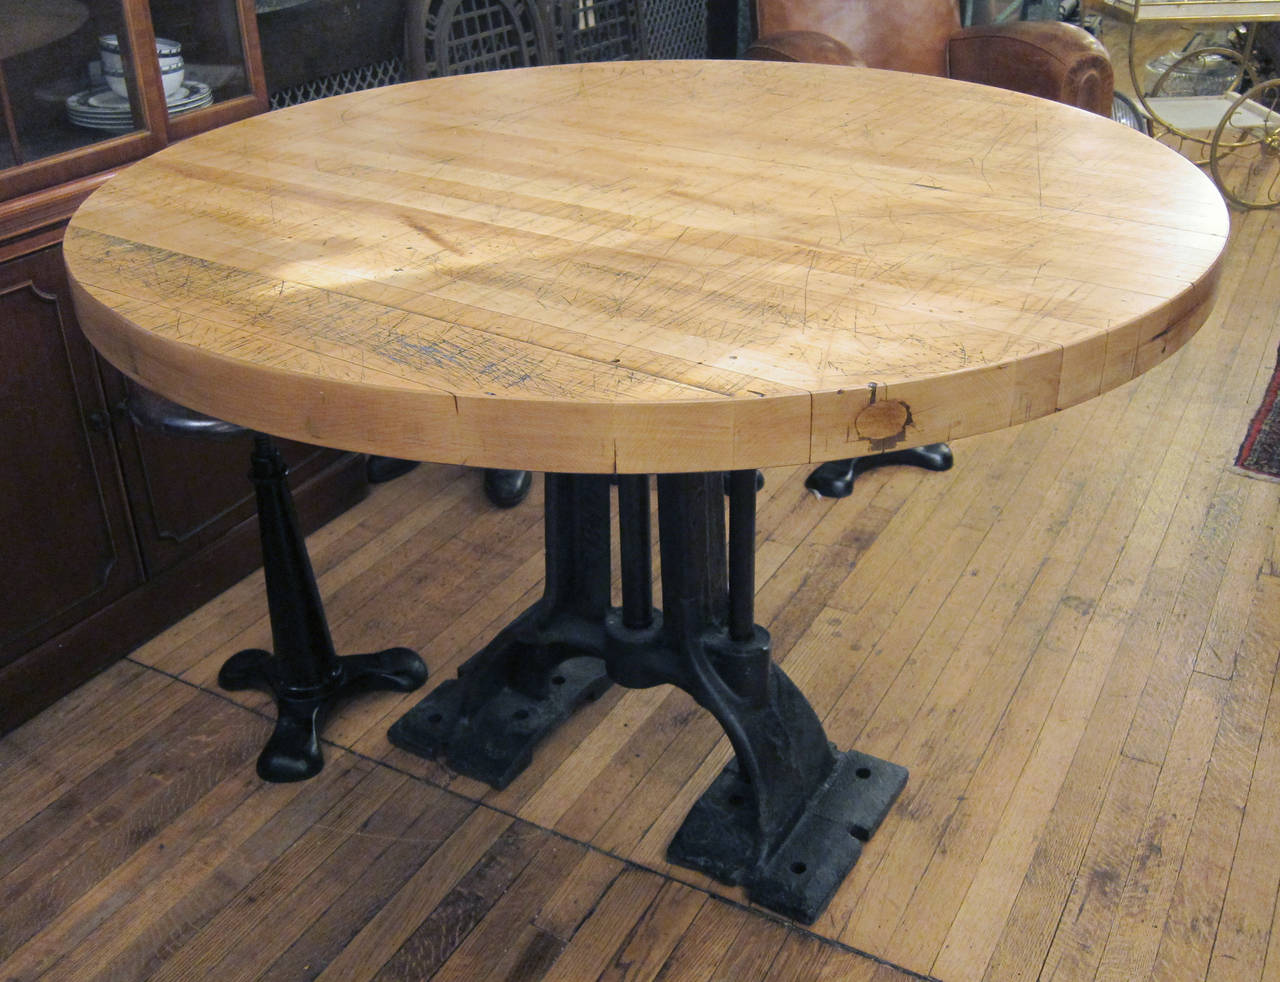 refurbished round butcher block table with heavy cast iron